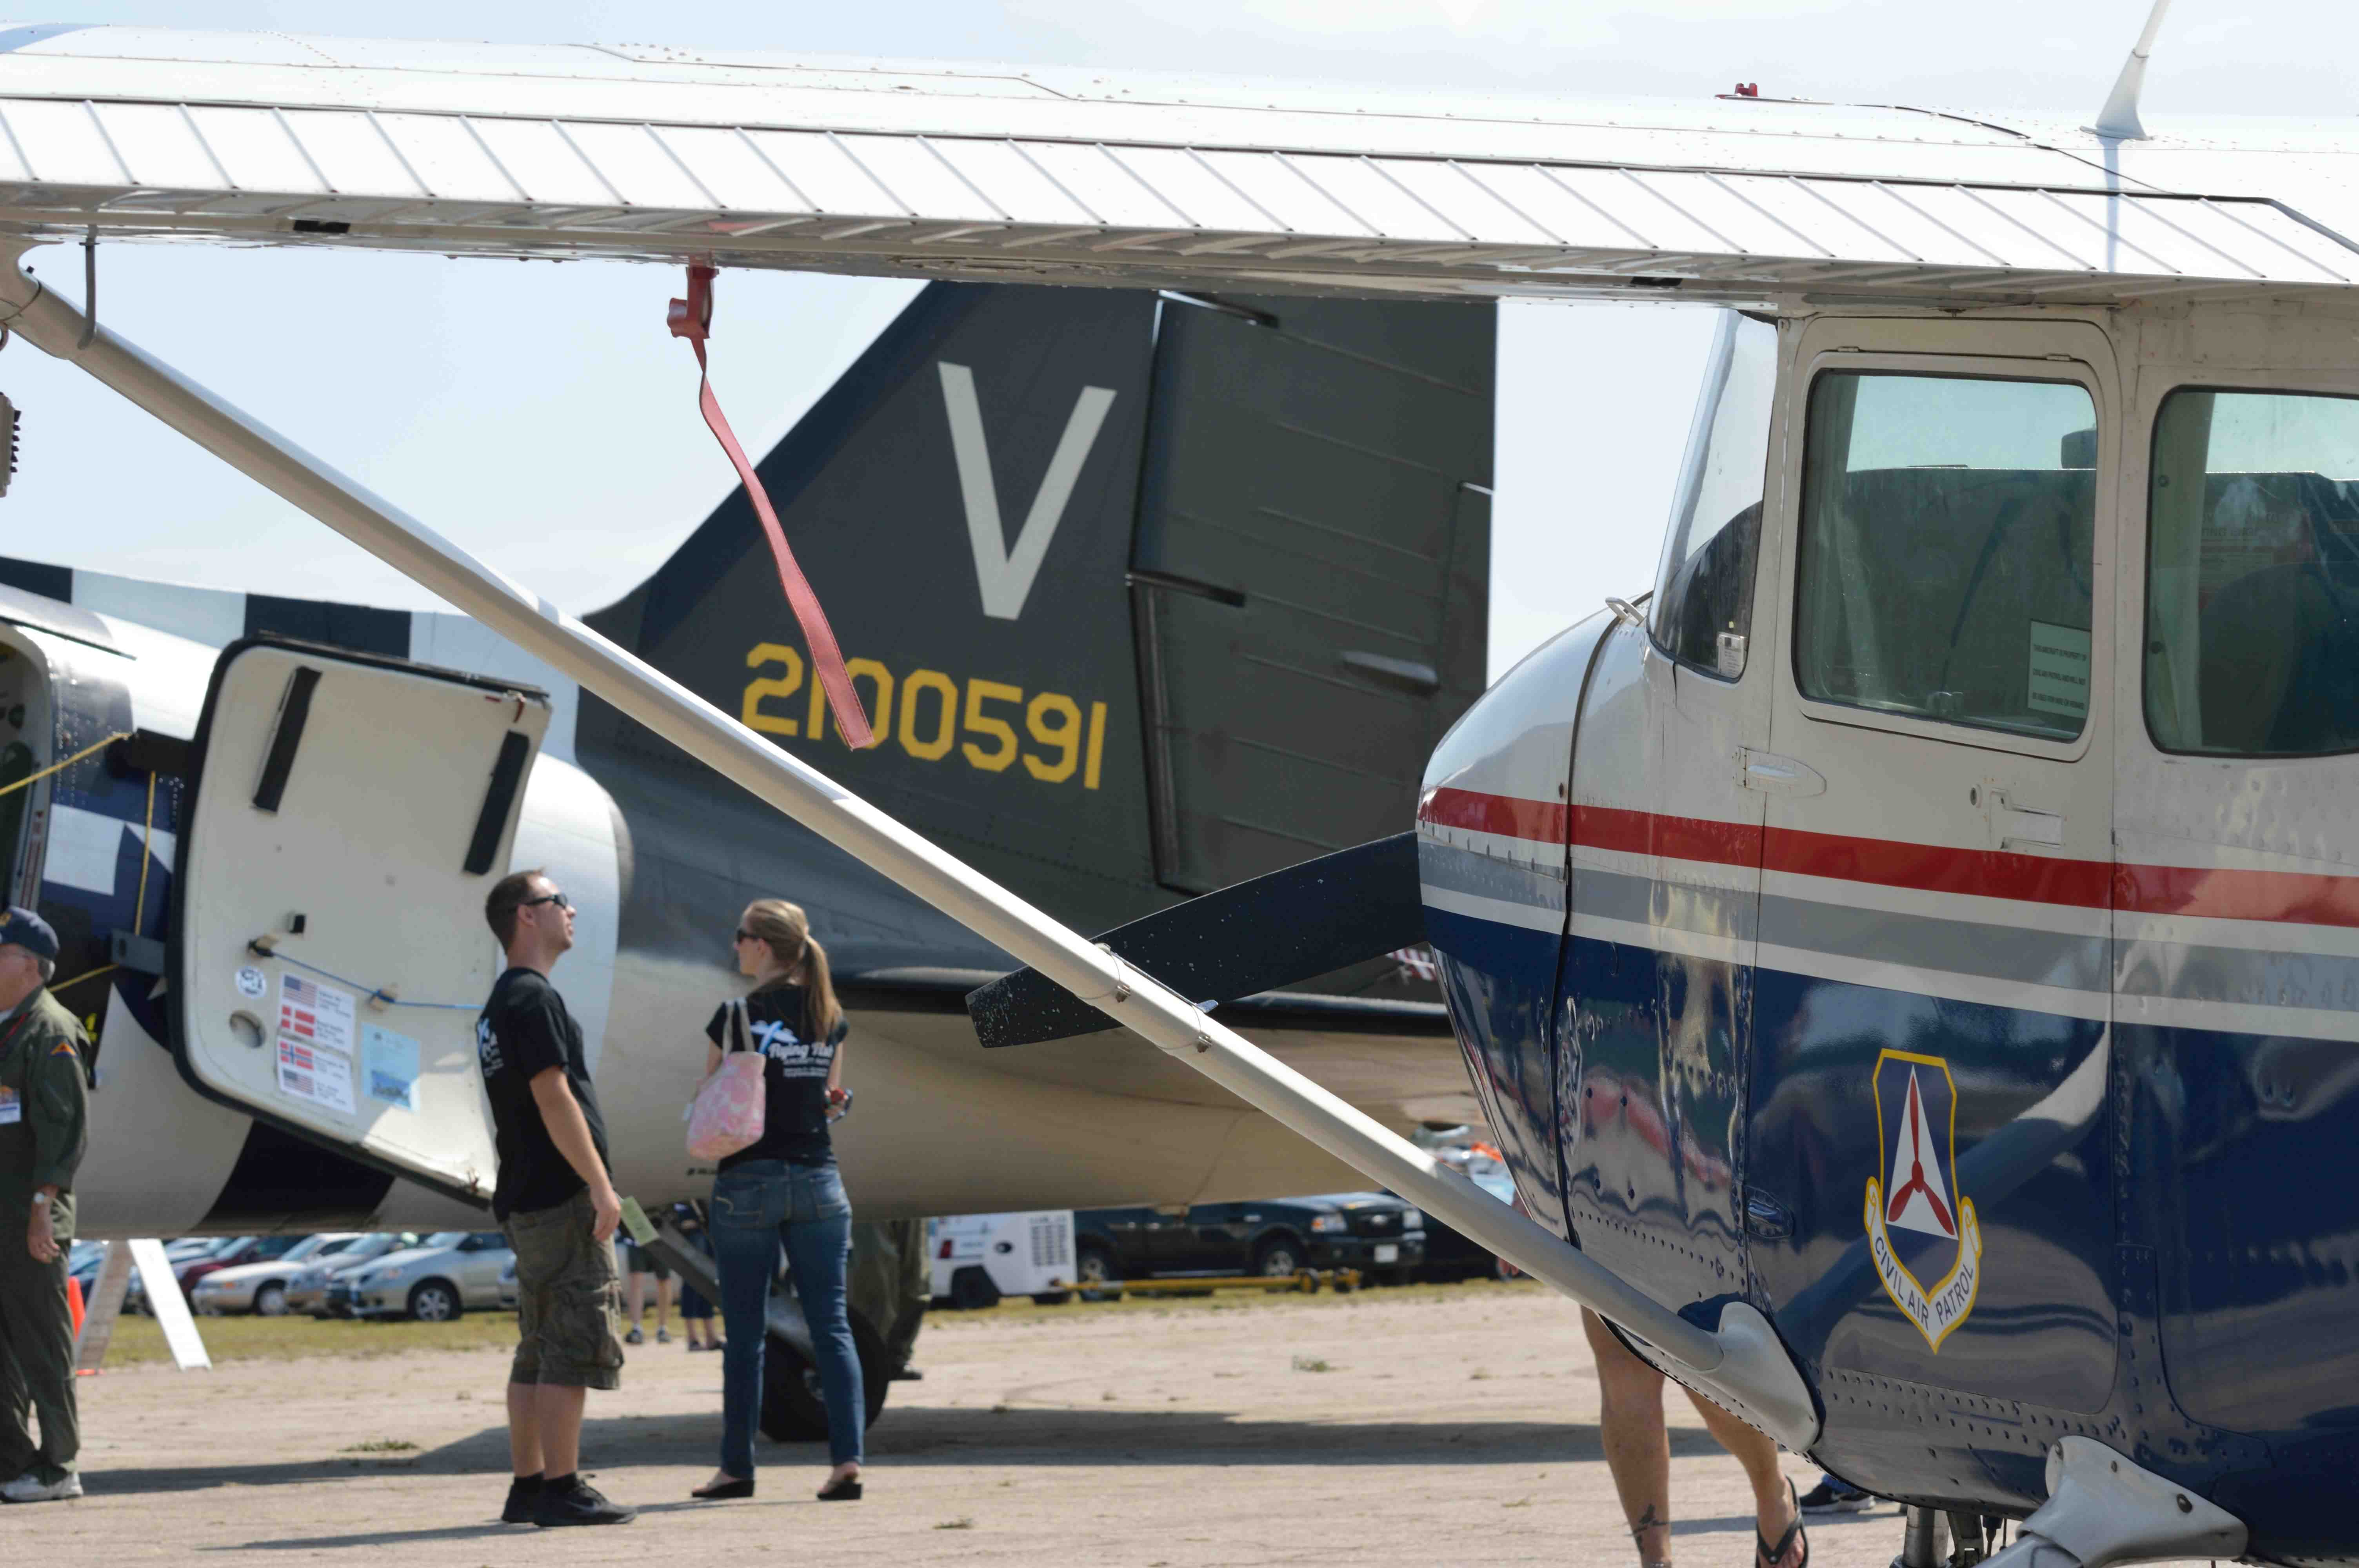 Civil Air Patrol worked together with the Valiant Air Command to help make the Airshow days run smoothly. The Tico Belle tail seen through the CAP aircraft strut.